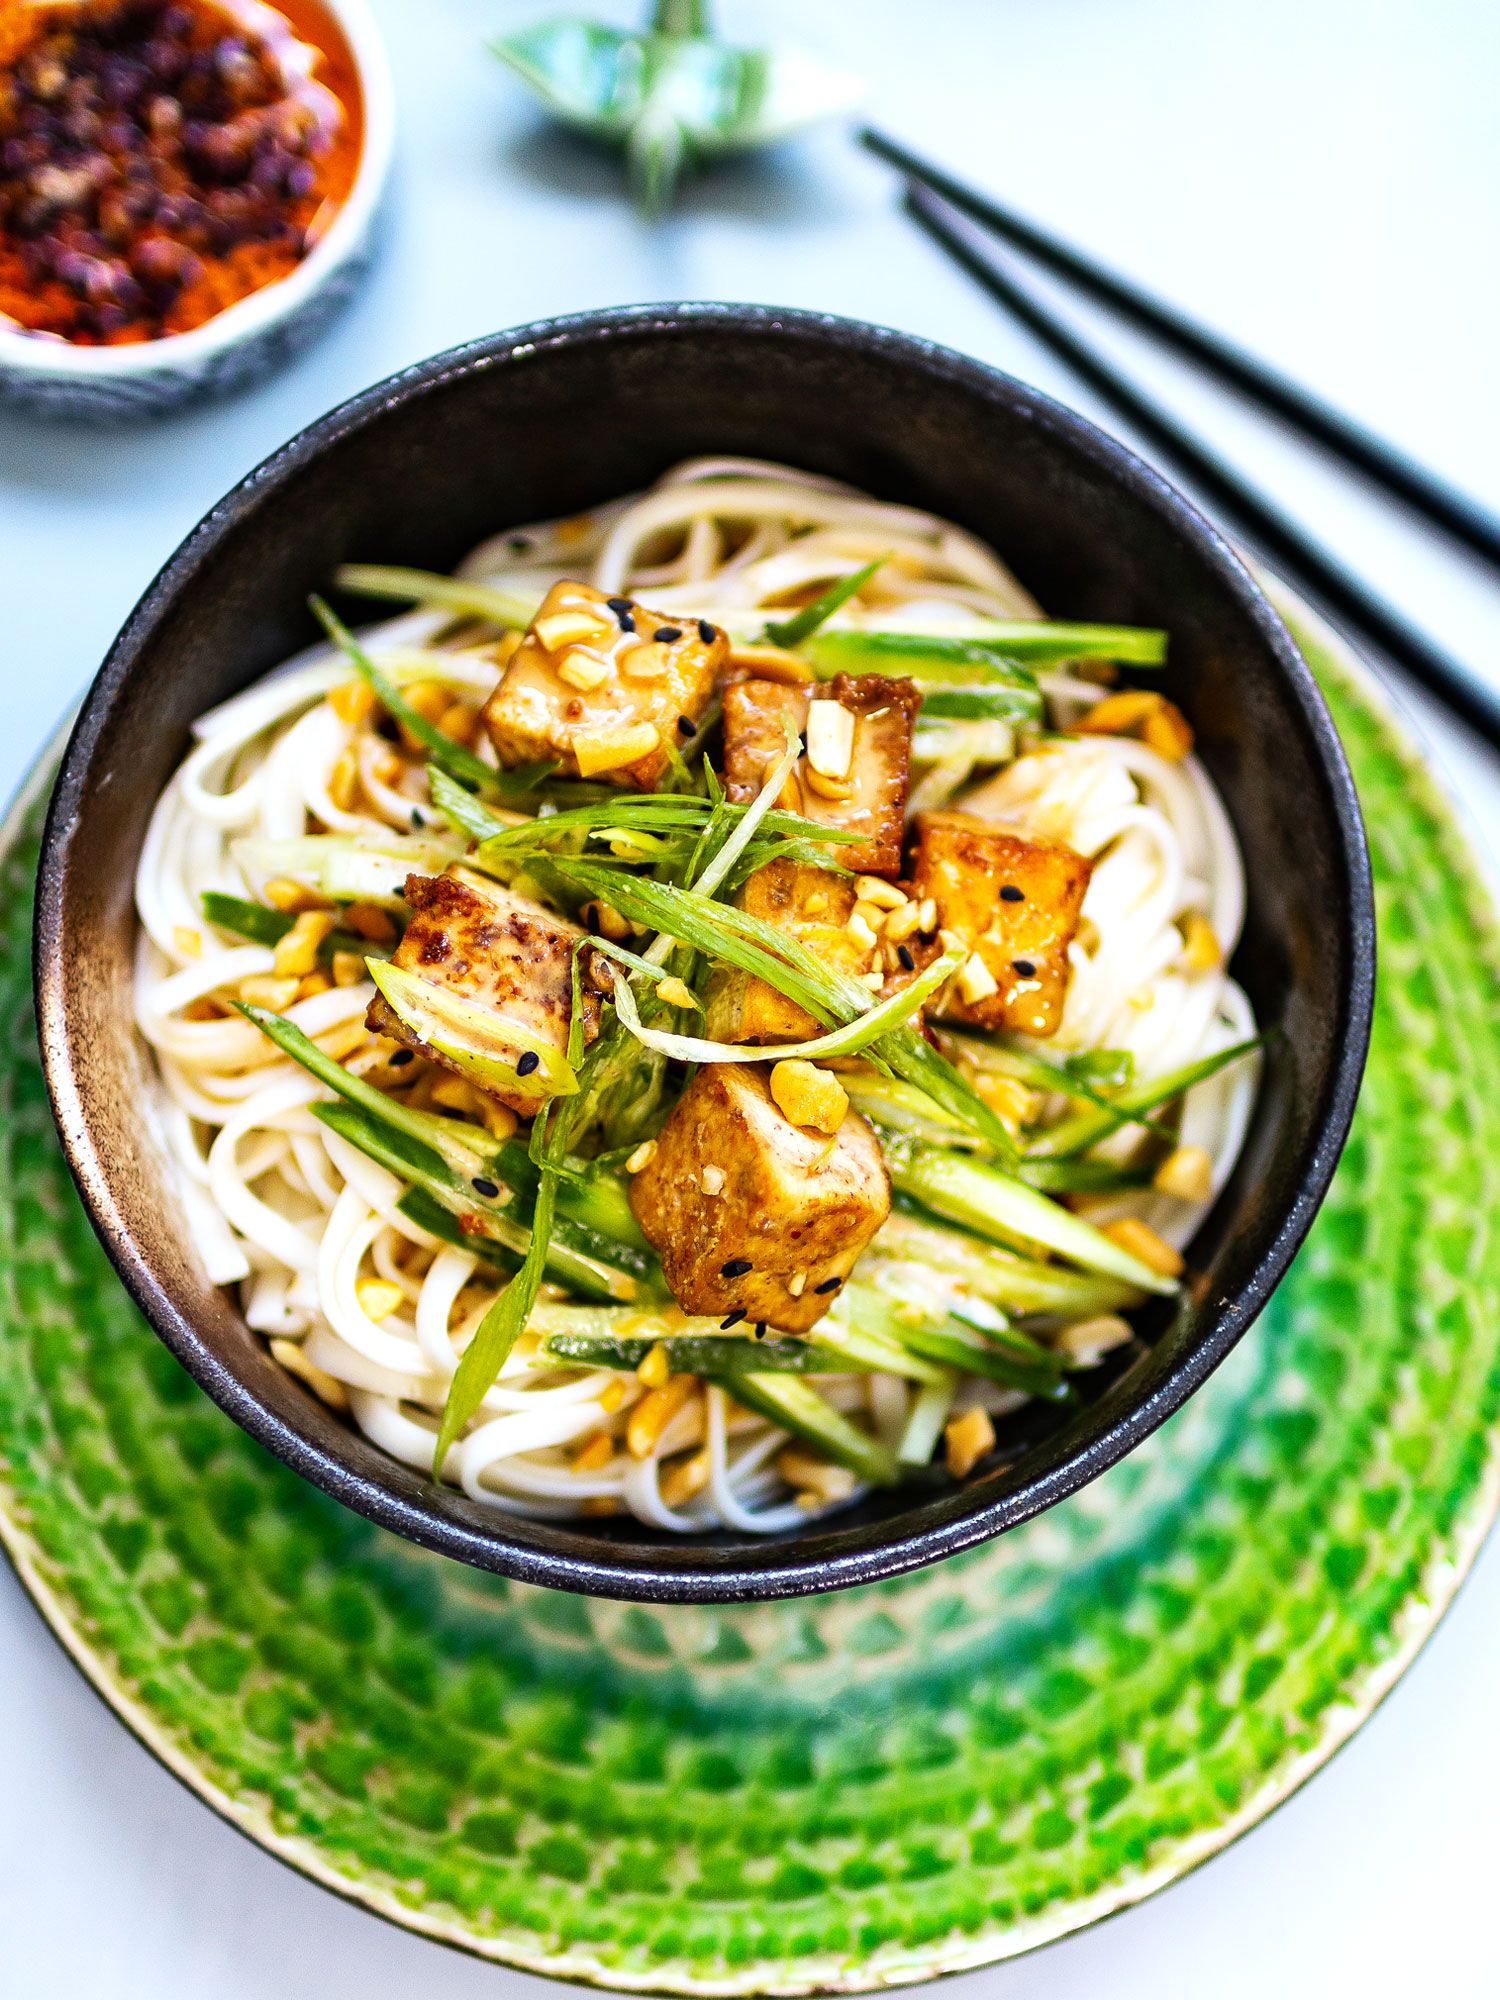 Cold Soba Salad with Tofu and Sesame Dressing